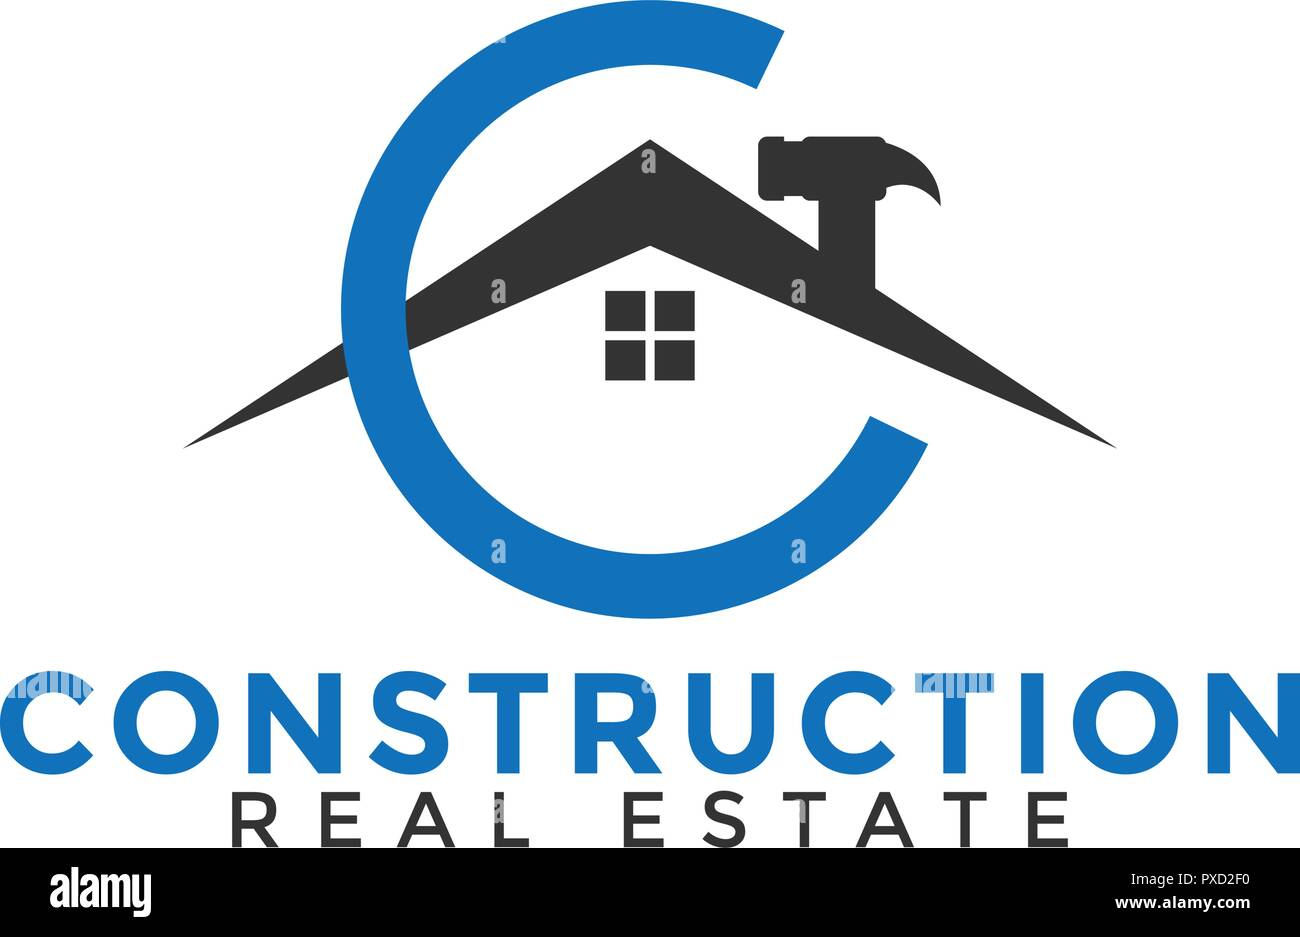 Construction home logo icon design illustration template ... on architecture icons, home construction artwork, home construction windows, home builder icon, home construction theme, home construction software, home construction photography, home construction clip art, home construction illustration, contractors icons, home logo construction, home construction tips, home construction united states, home construction data, remodeling icons, home construction cards, electrical icons, home construction quotes, home under construction, home construction wallpaper,